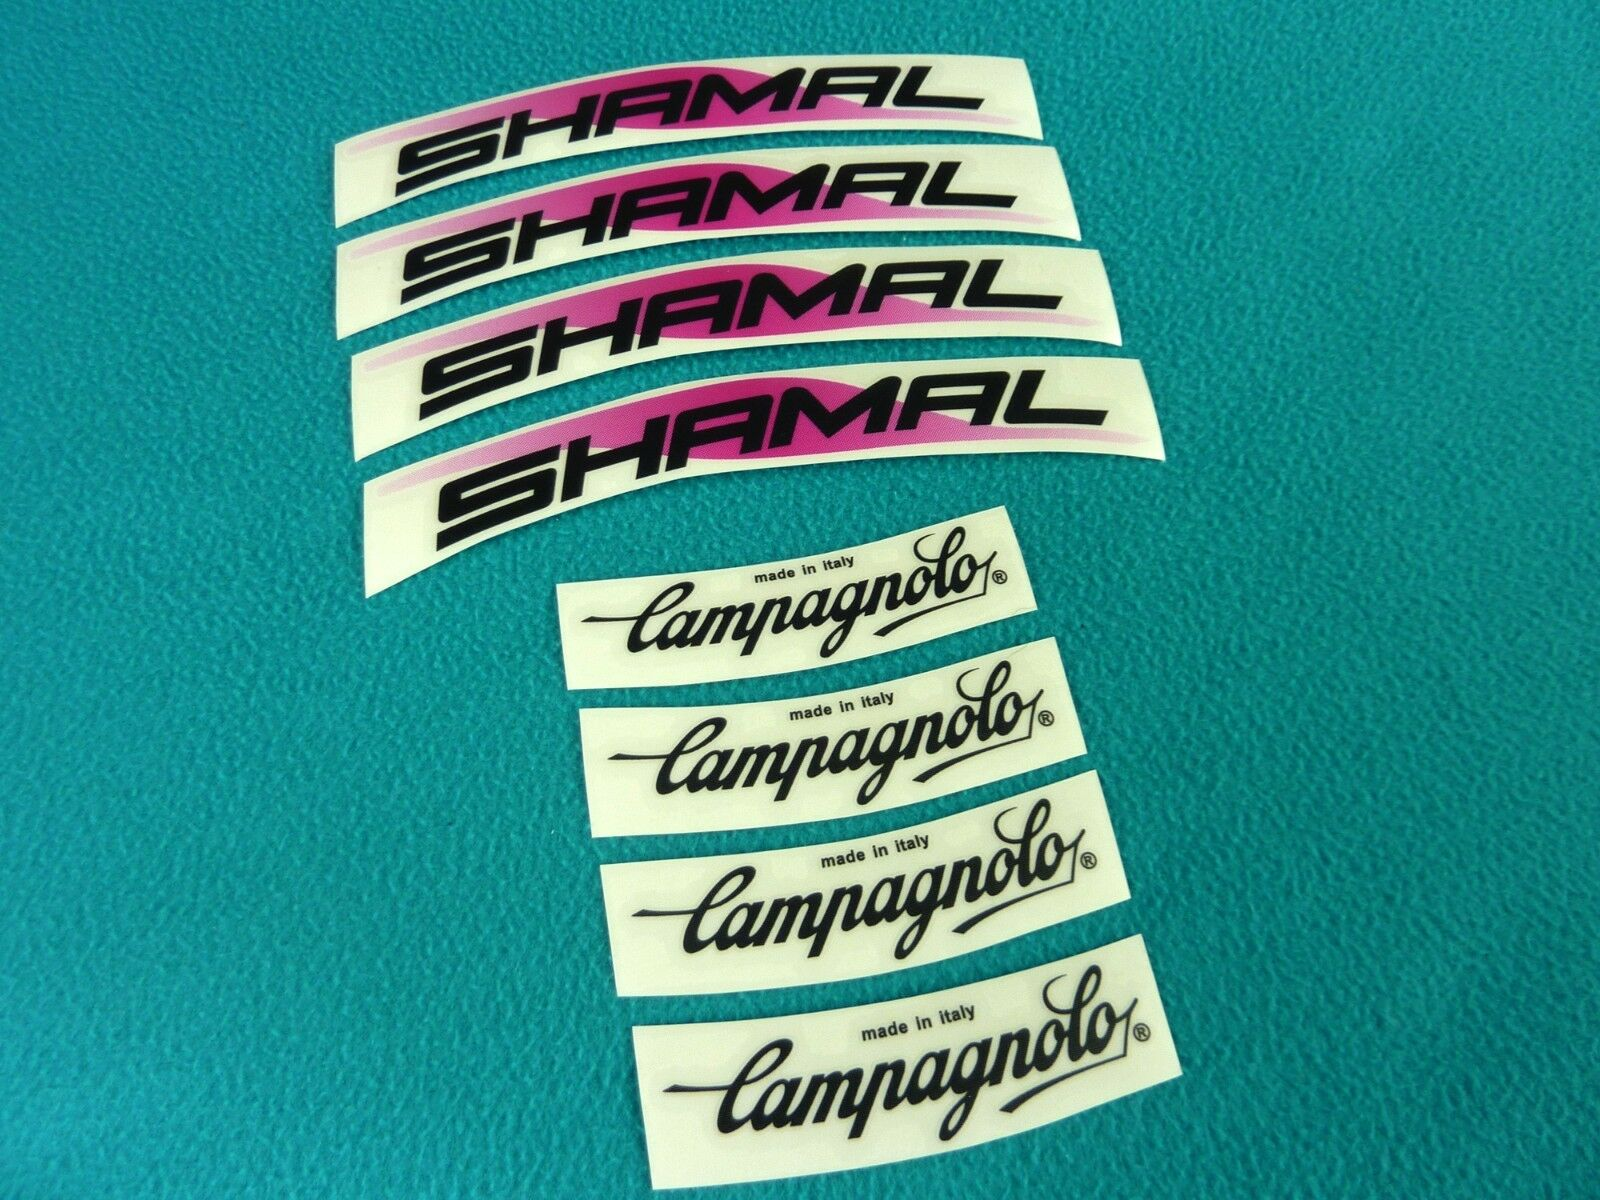 CAMPAGNOLO SHAMAL REPLACEMENT RIM DECAL SET  FOR 2 RIMS